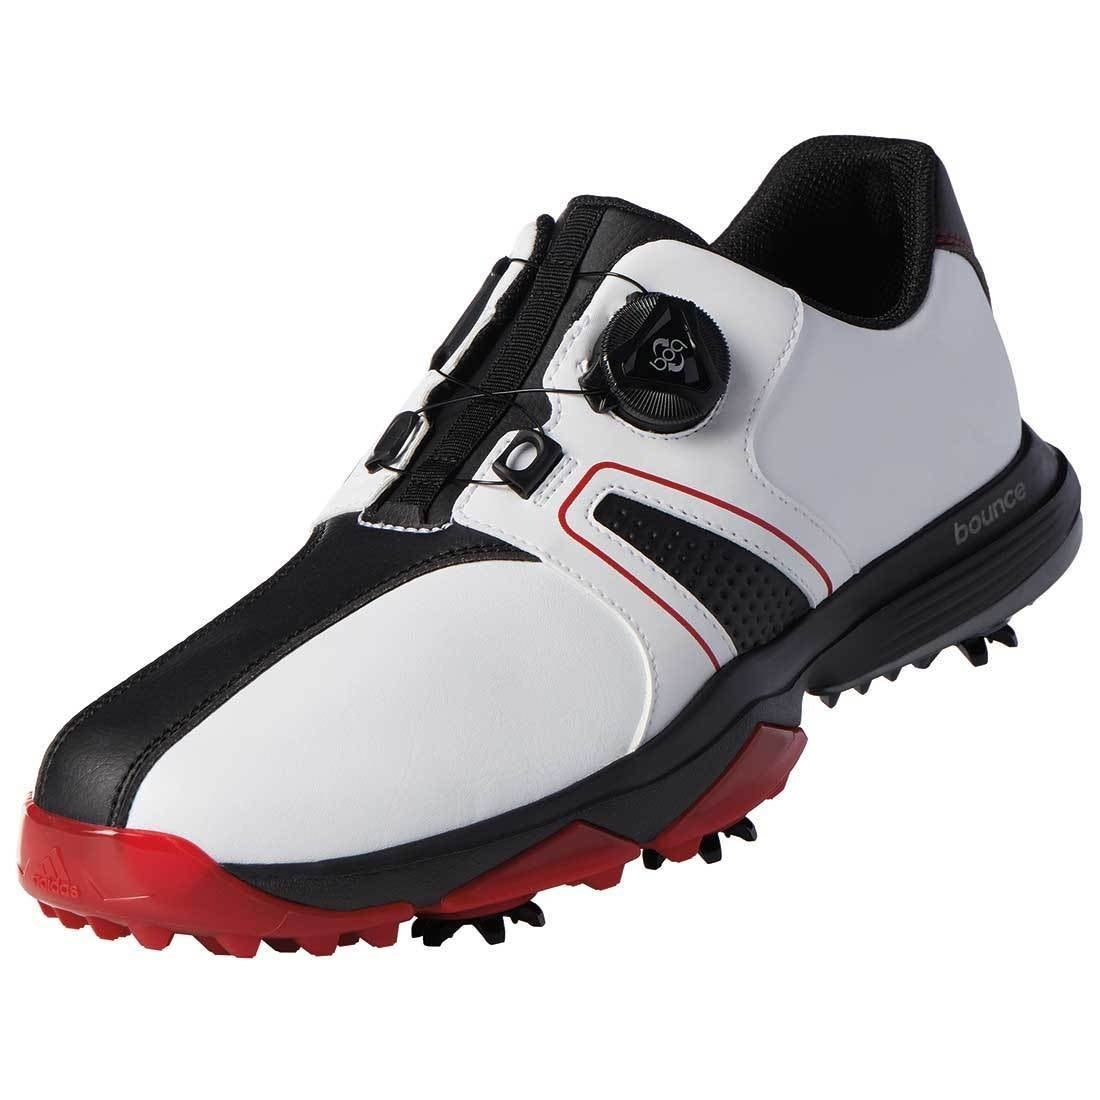 timeless design c701d ffb83 Shop Adidas Men s 360 Traxion BOA White Core Black Red Golf Shoes  Q44951-Q44955 (Medium Only) - Free Shipping Today - Overstock - 26280260